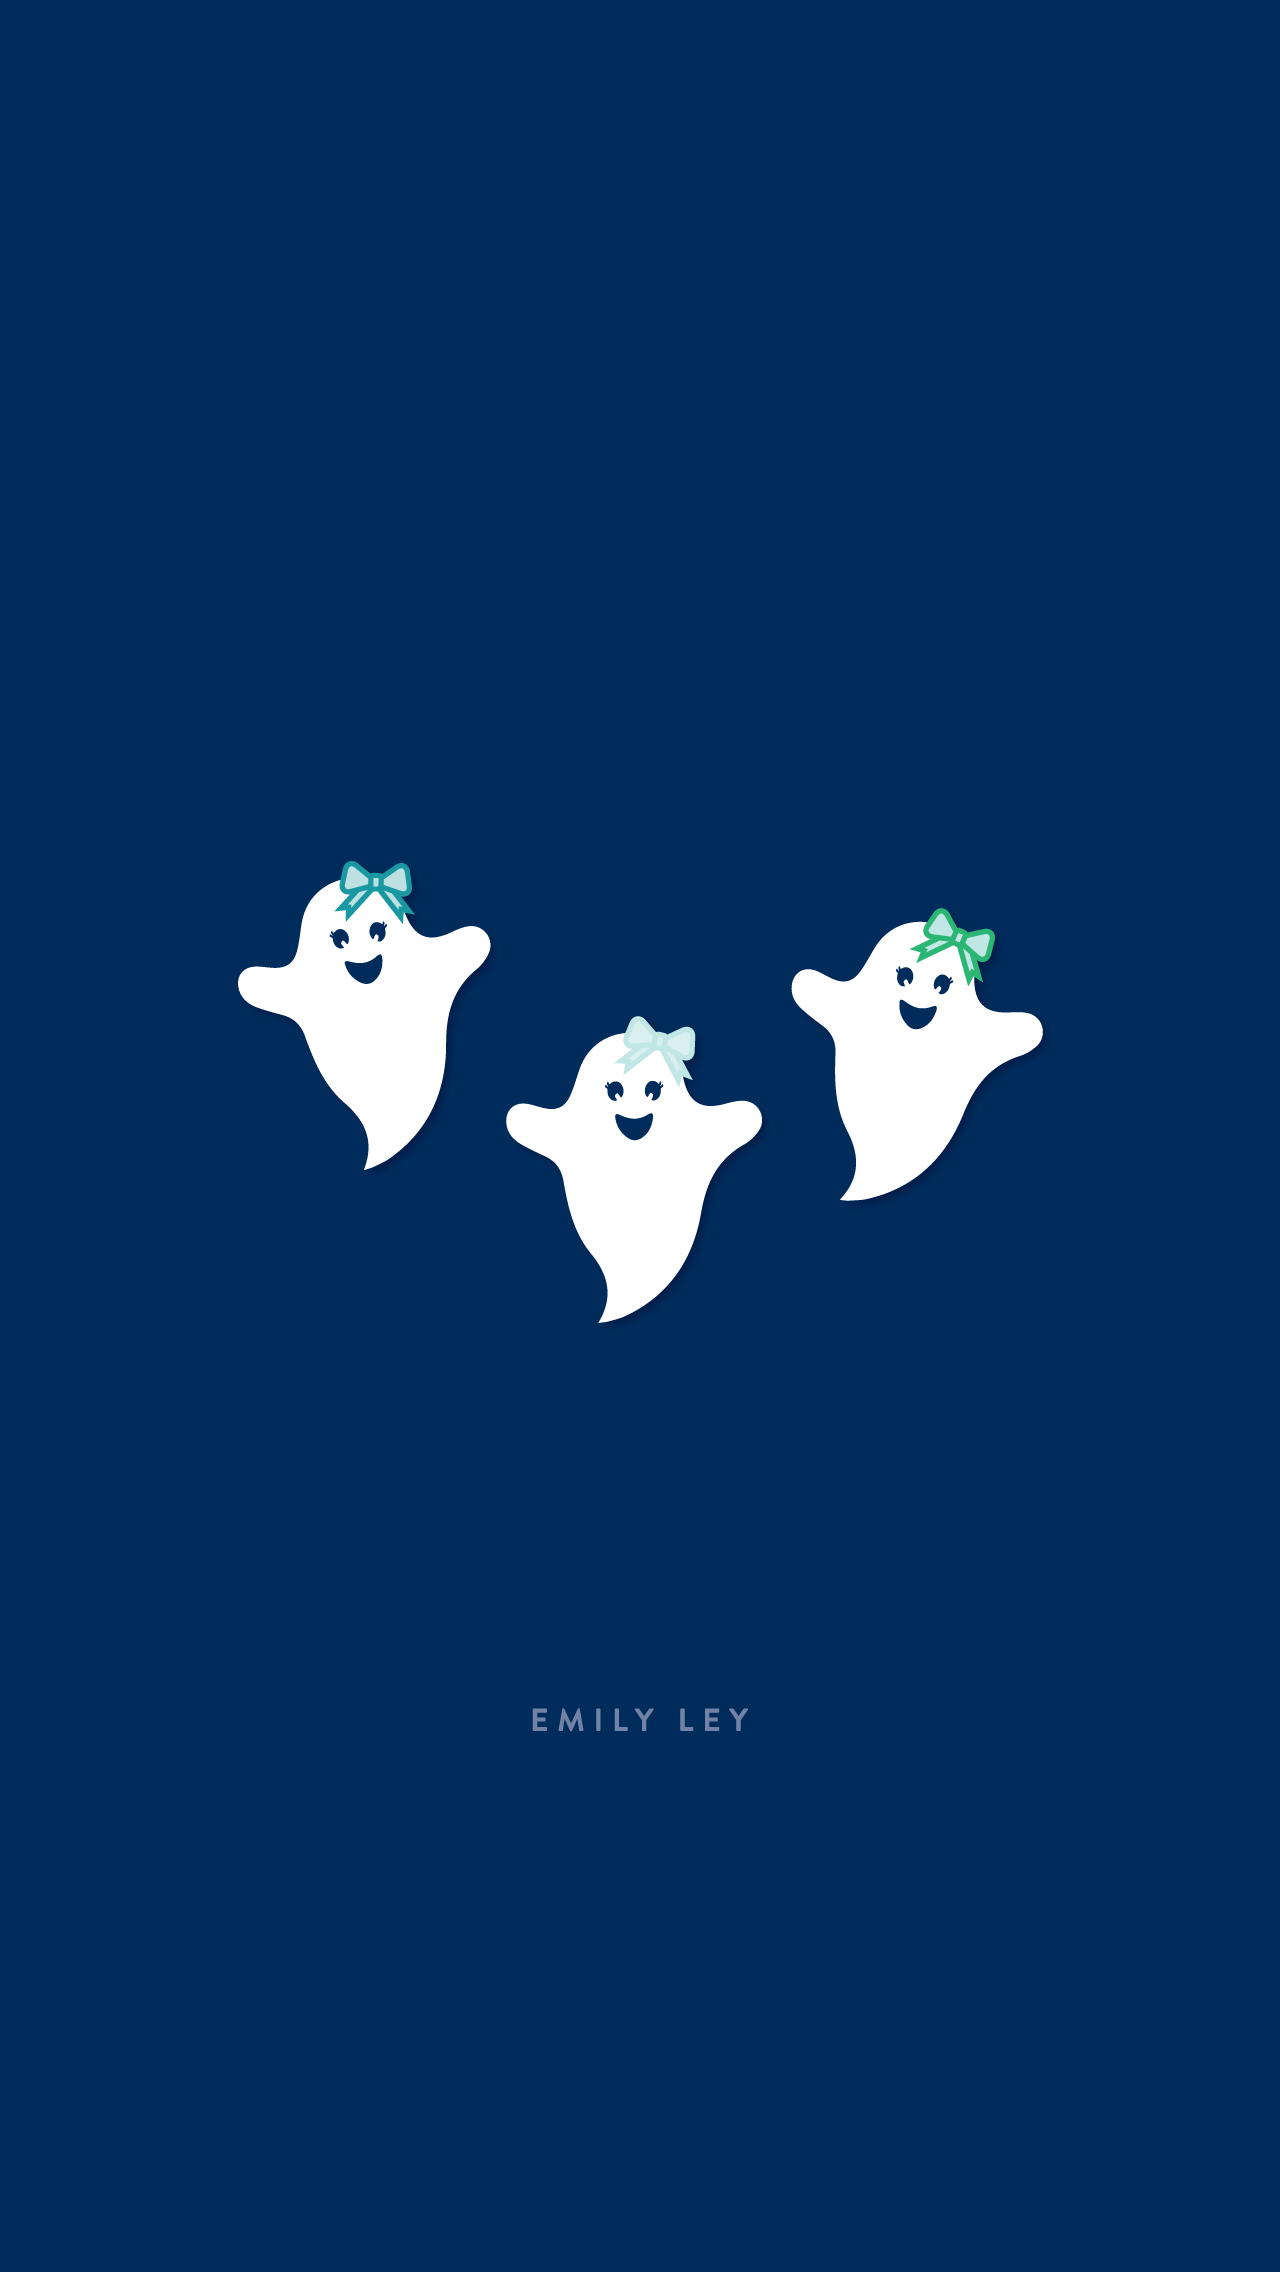 Free Iphone Wallpaper For Halloween Ghosts Wallpaper Navy Happy Ghosts Disney Phone Backgrounds Iphone Wallpaper Fall Disney Phone Wallpaper